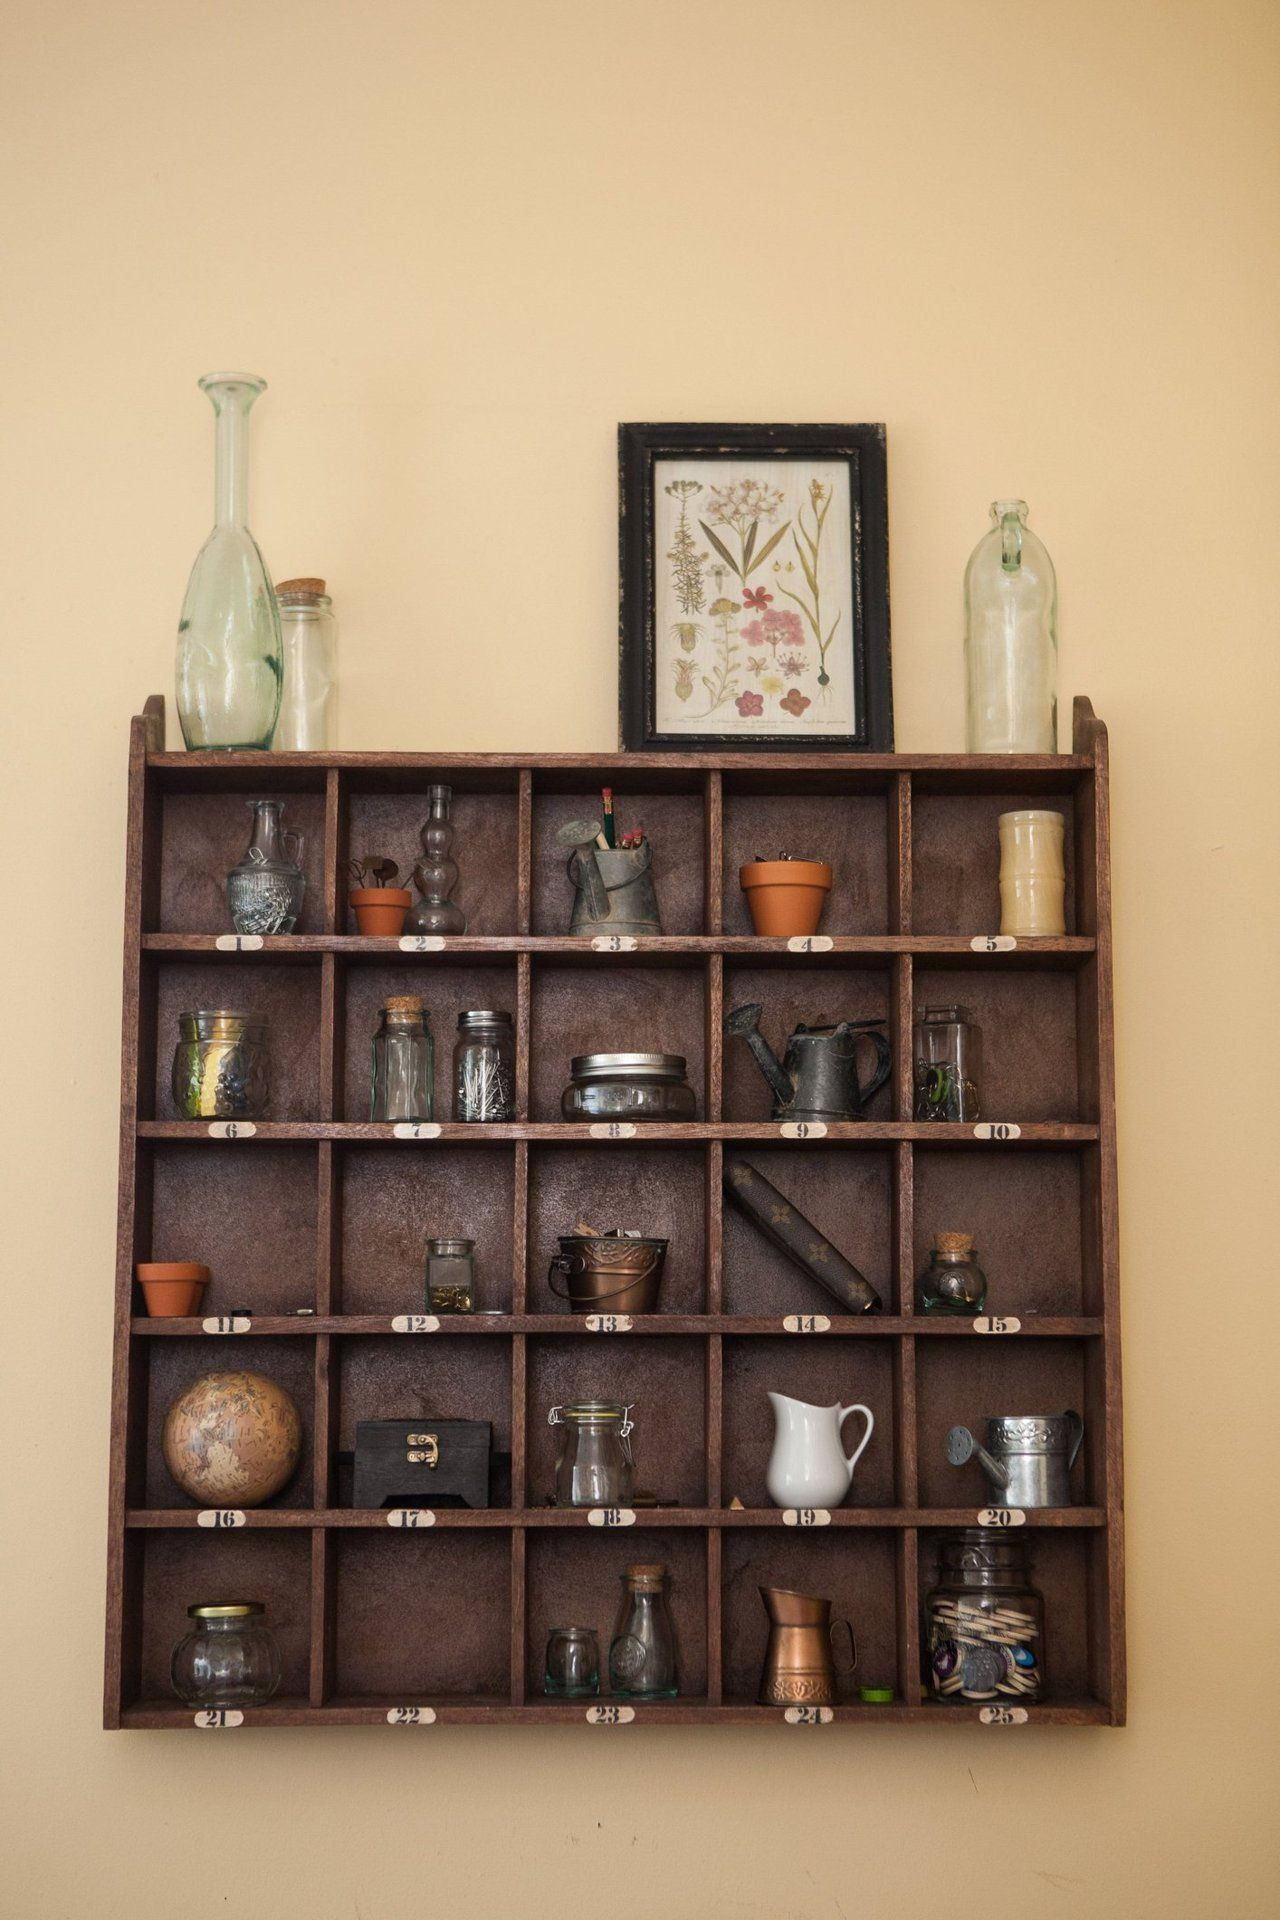 Emily And Kai S Thoughtful And Stunning Seattle Home Knick Knack Shelf Gothic Home Decor Crystal Shelves